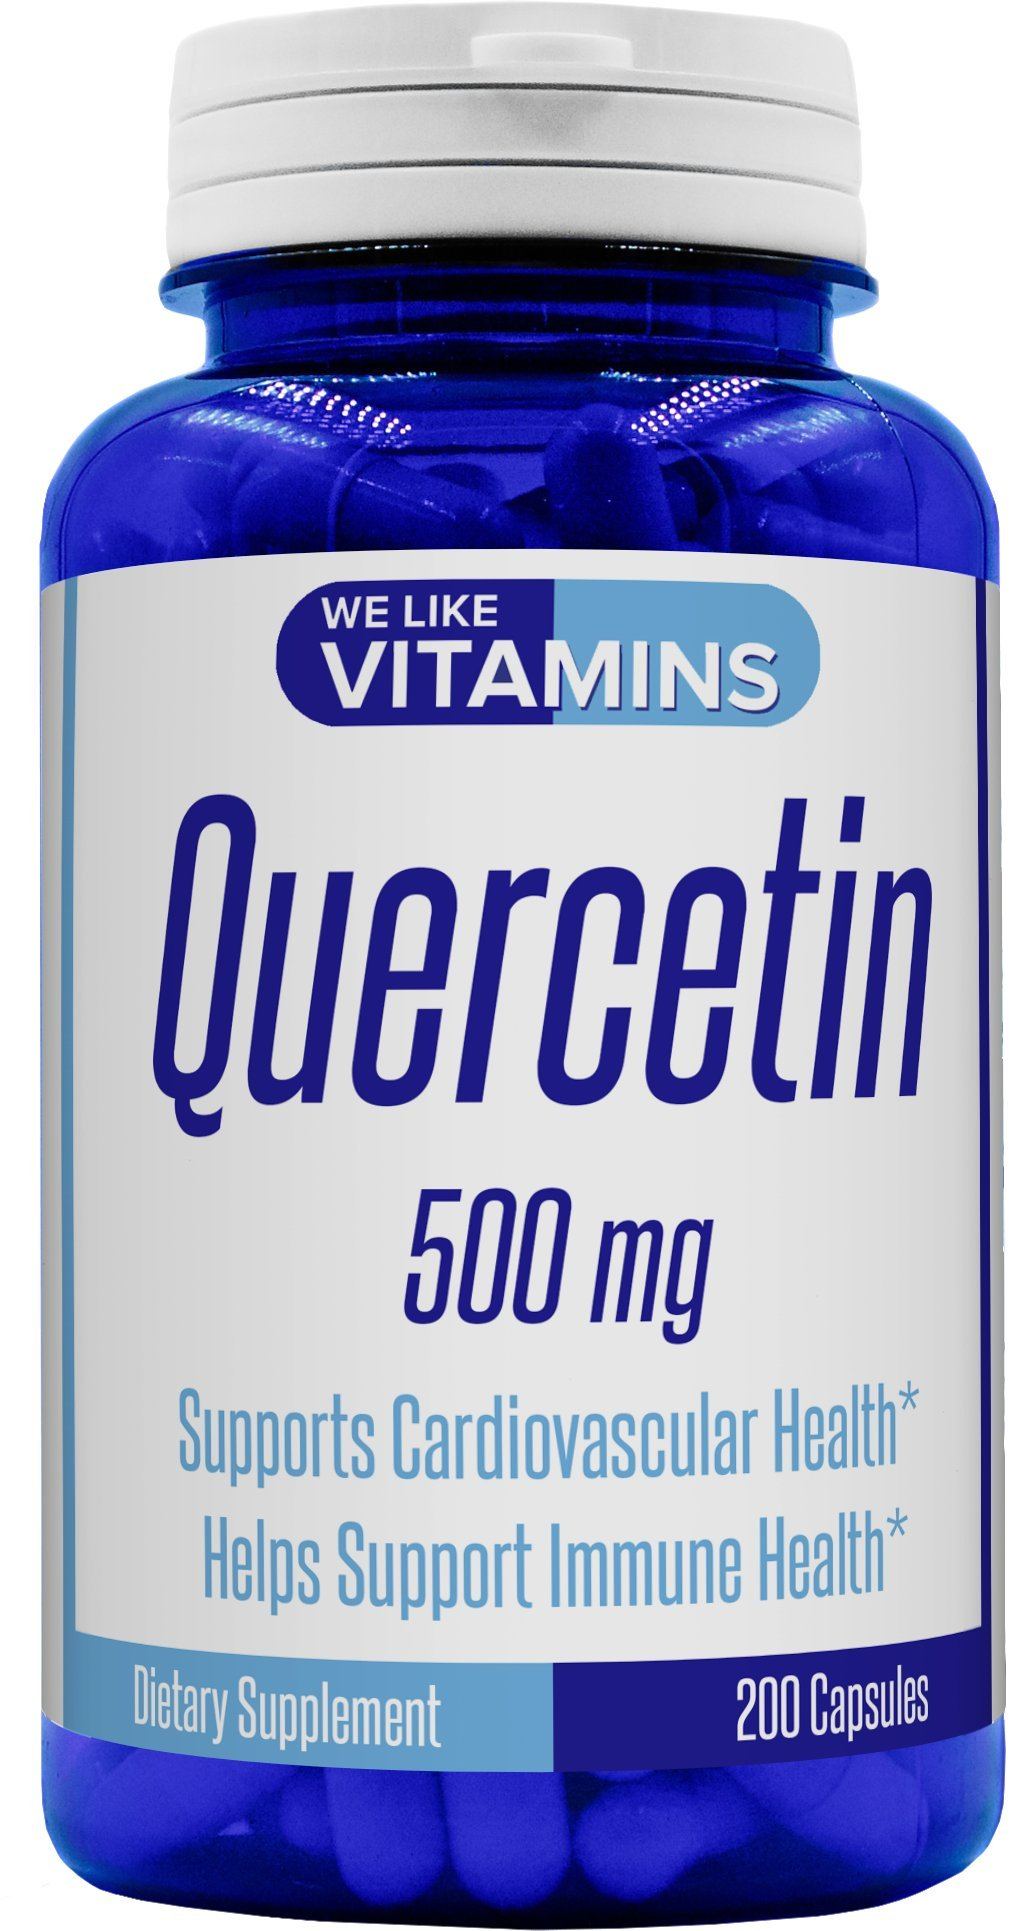 Quercetin 500mg 200 Capsules (Non GMO & Gluten Free) Natural Antihistamine Quercetin Supplement Helps Support Cardiovascular, Immune, and Cellular Function. by We Like Vitamins